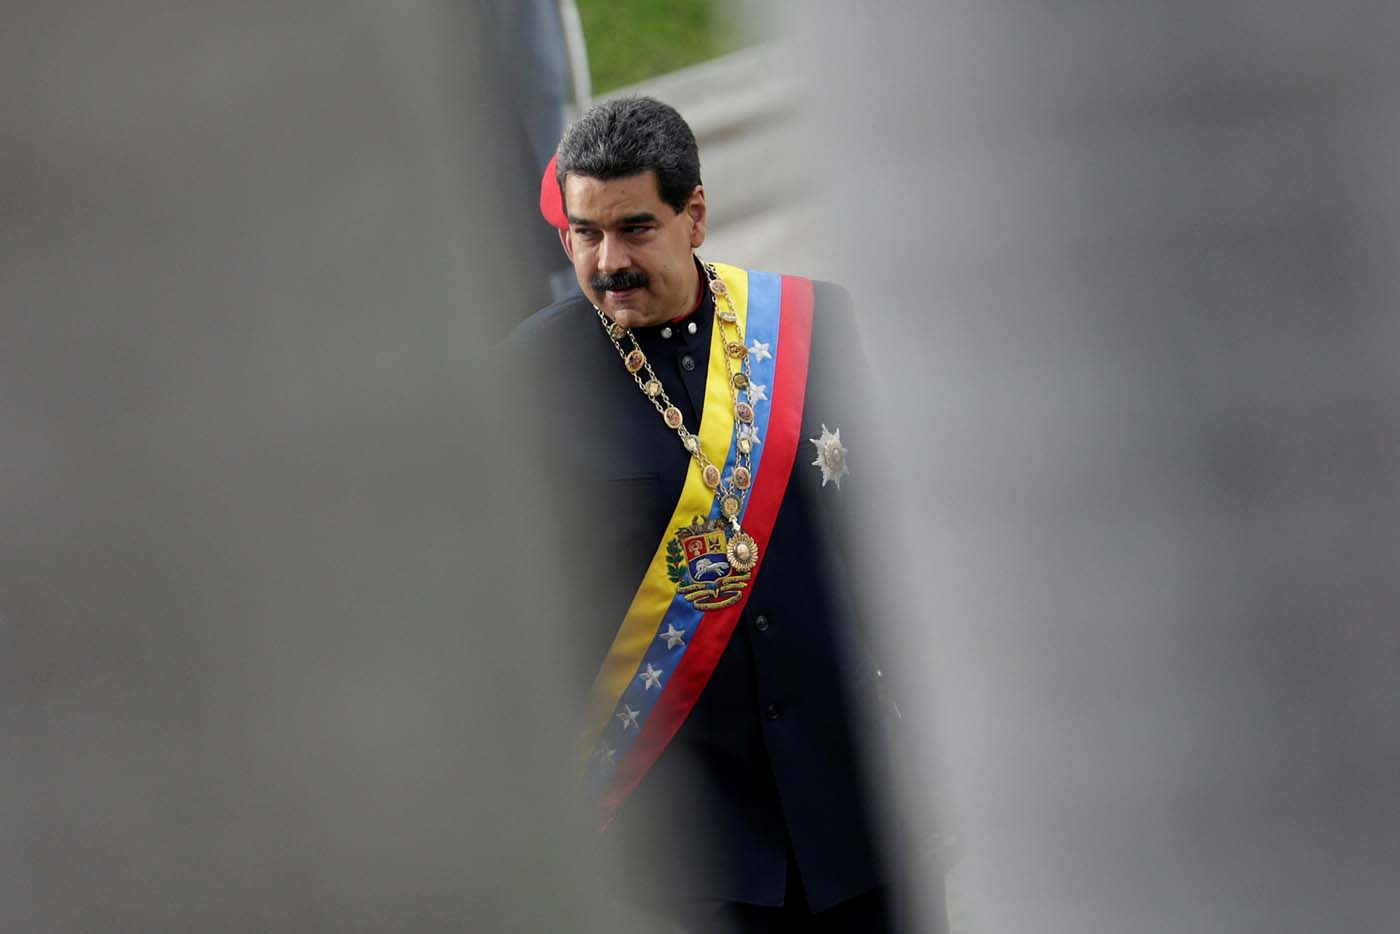 Venezuela's President Nicolas Maduro is pictured between palm trees as he arrives for a session of the National Constituent Assembly at Palacio Federal Legislativo in Caracas, Venezuela August 10, 2017. REUTERS/Ueslei Marcelino